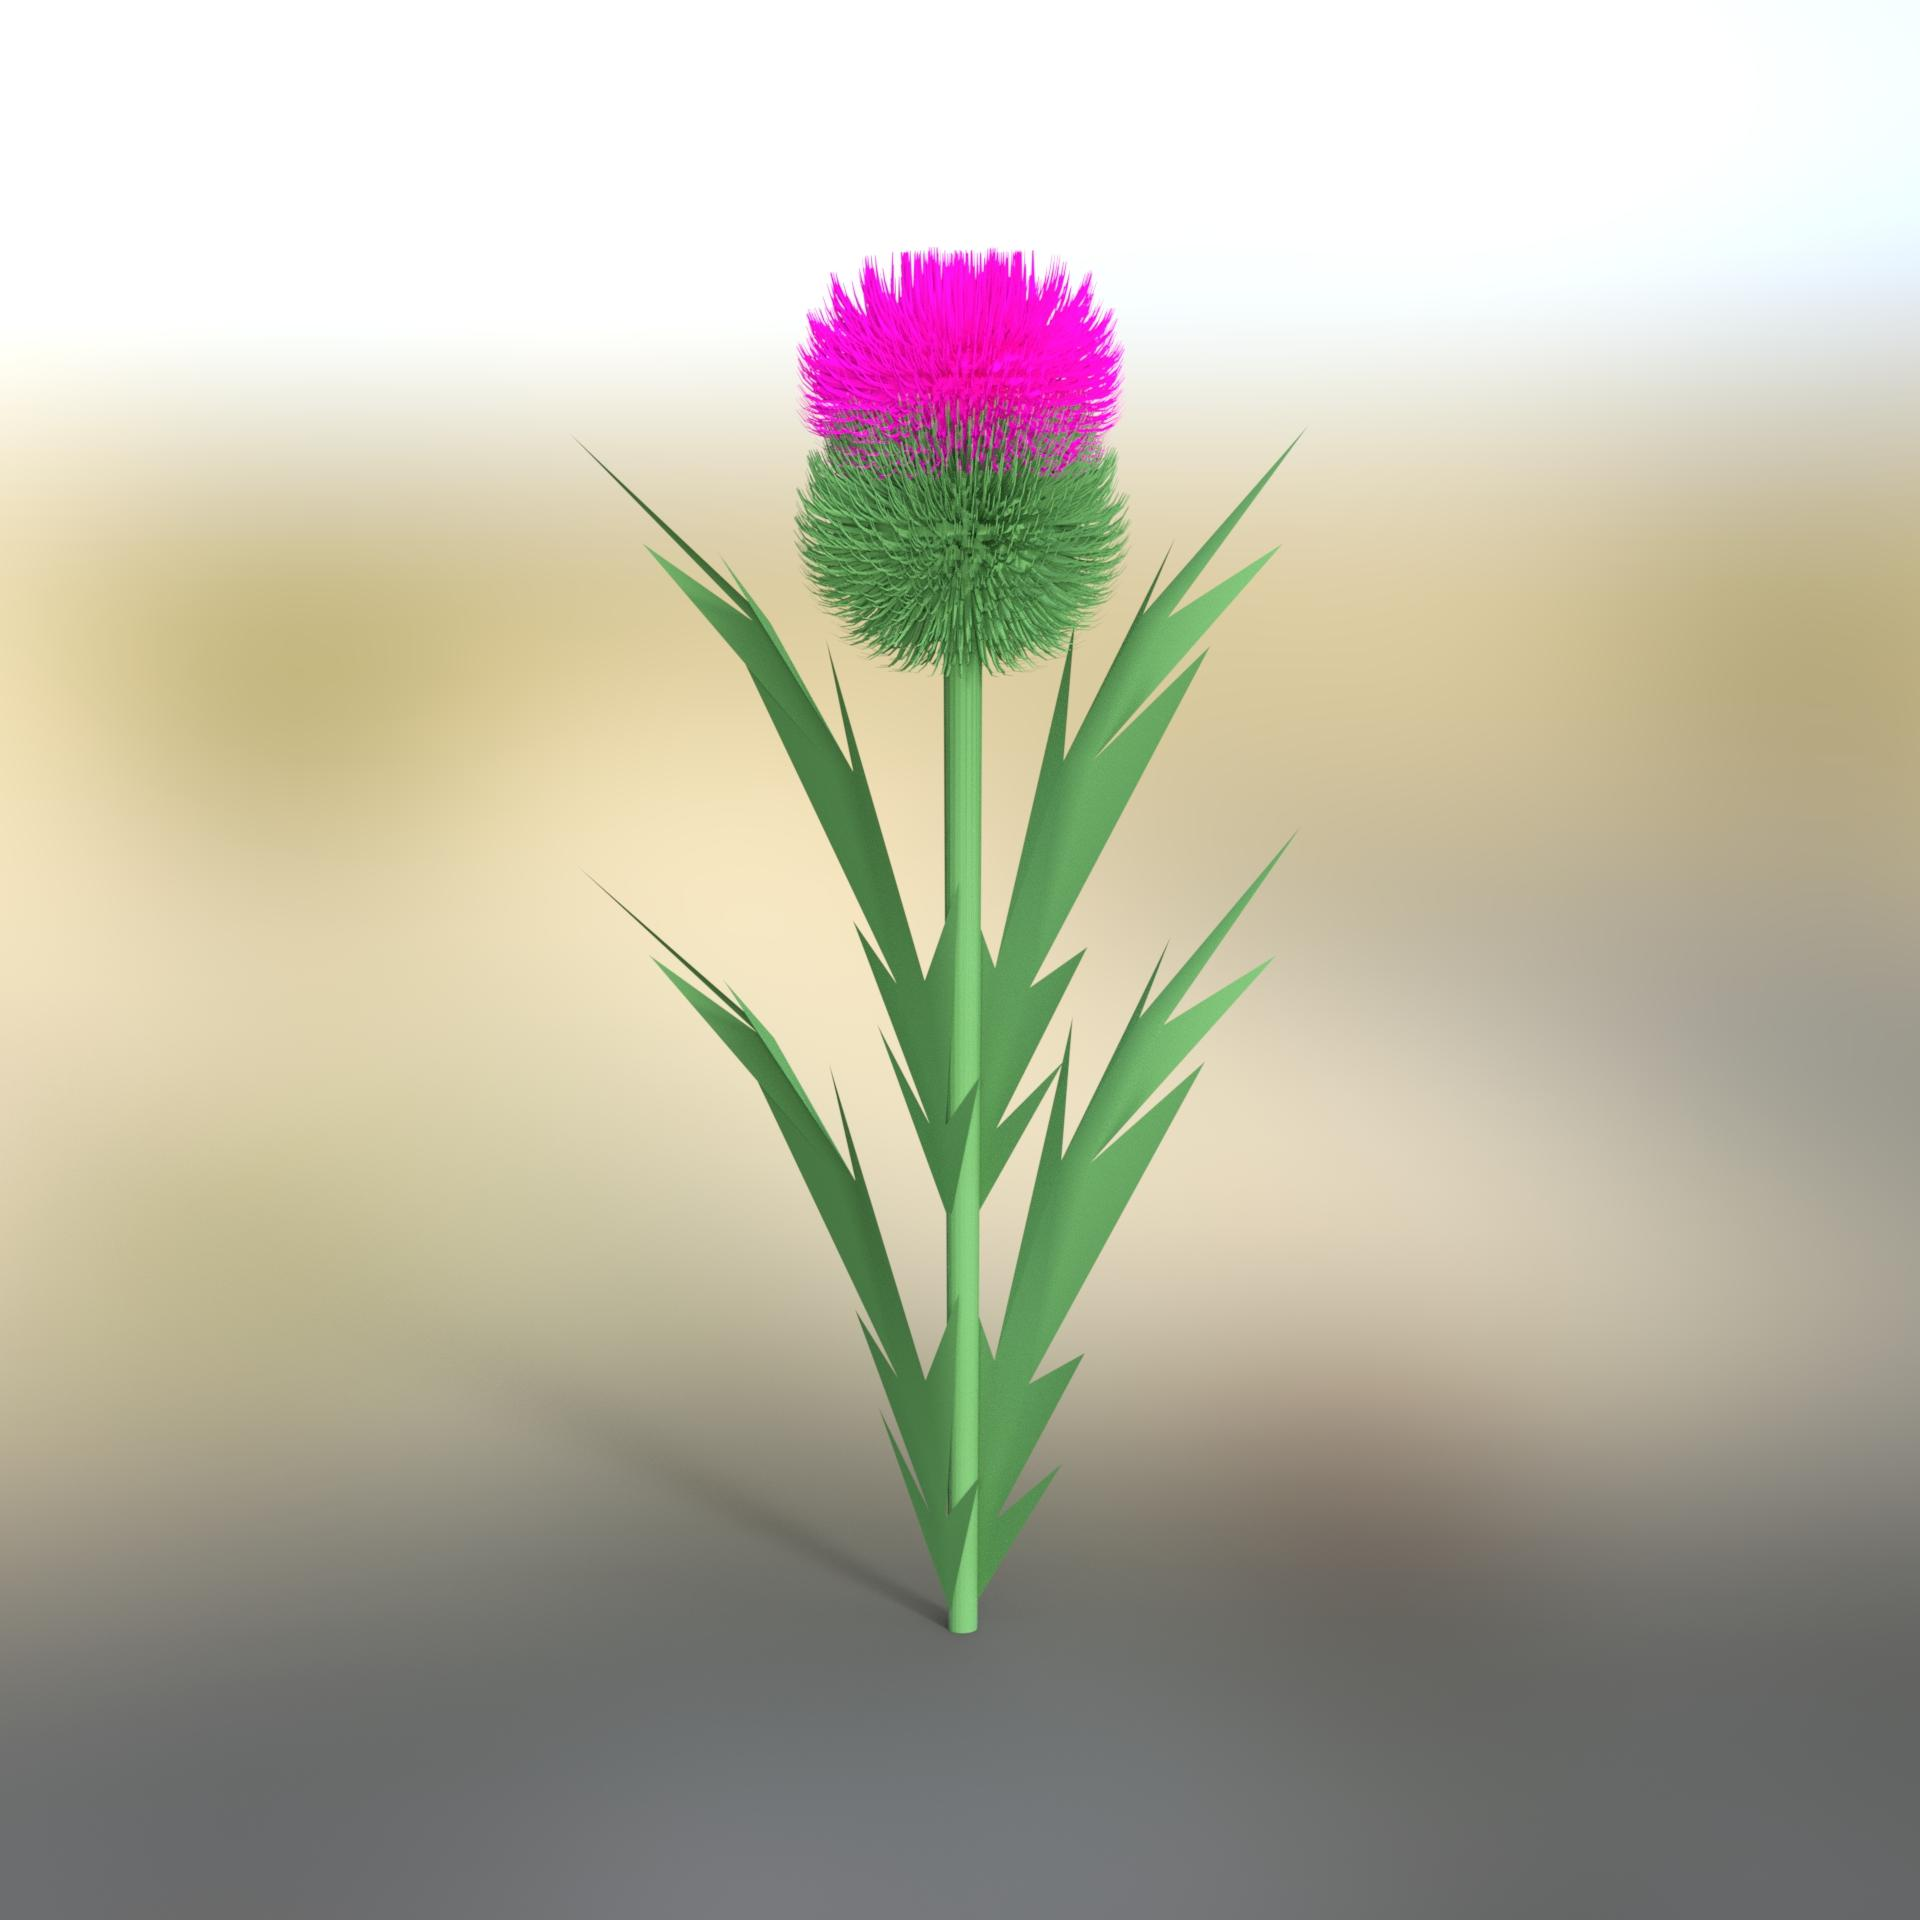 looking for scottish thistle daz 3d forums